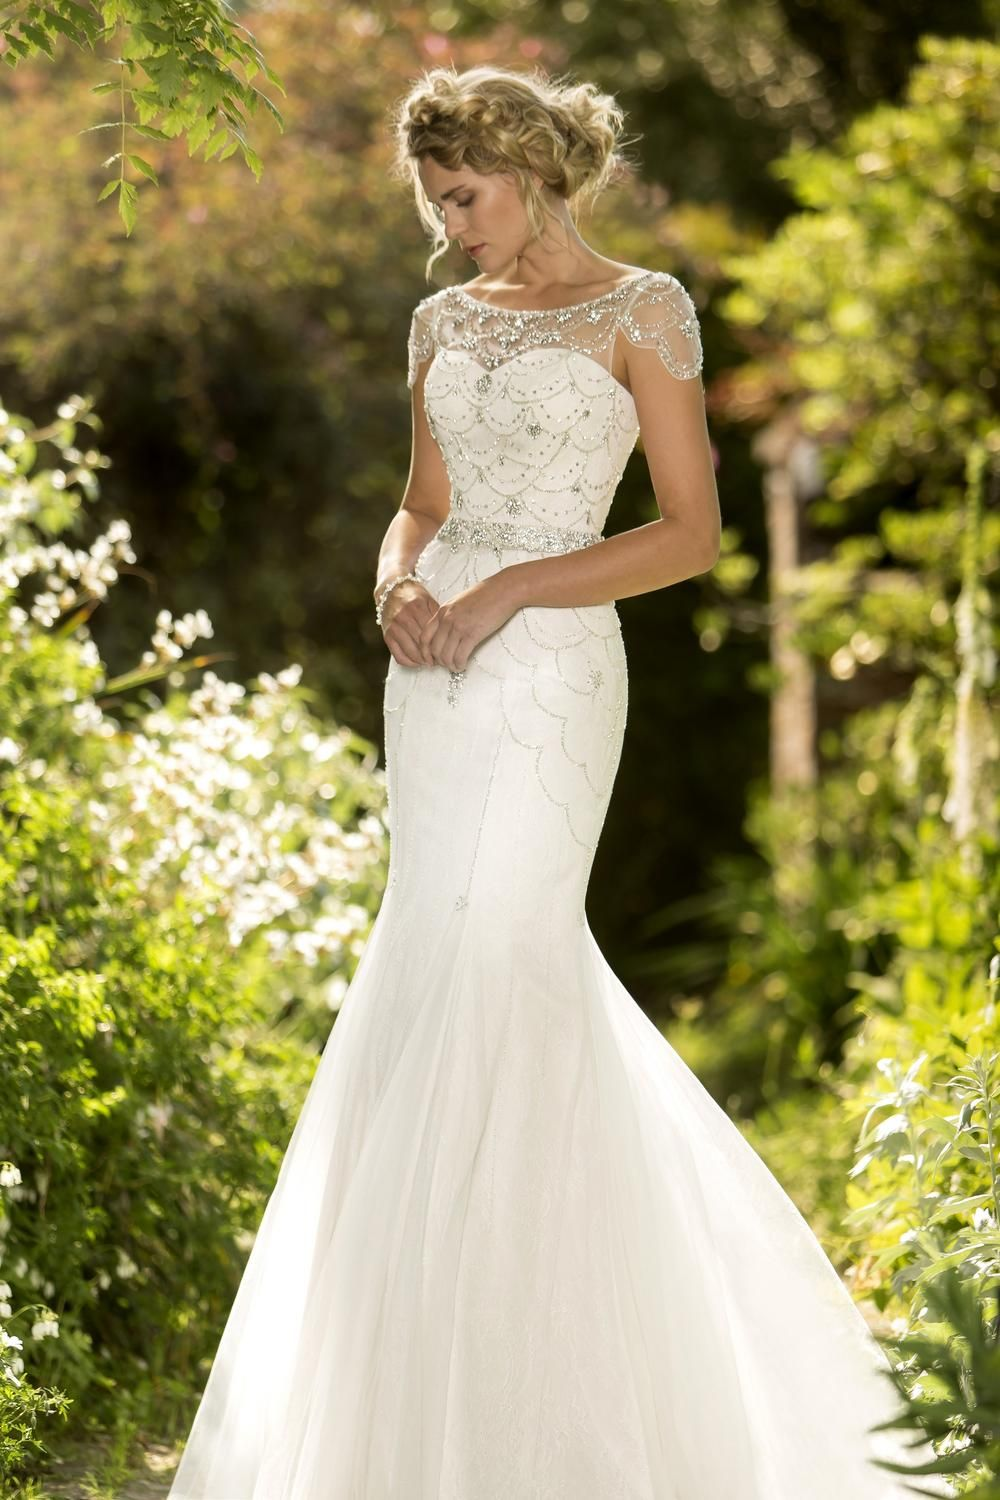 W185 by True Bride from Lori G Derby